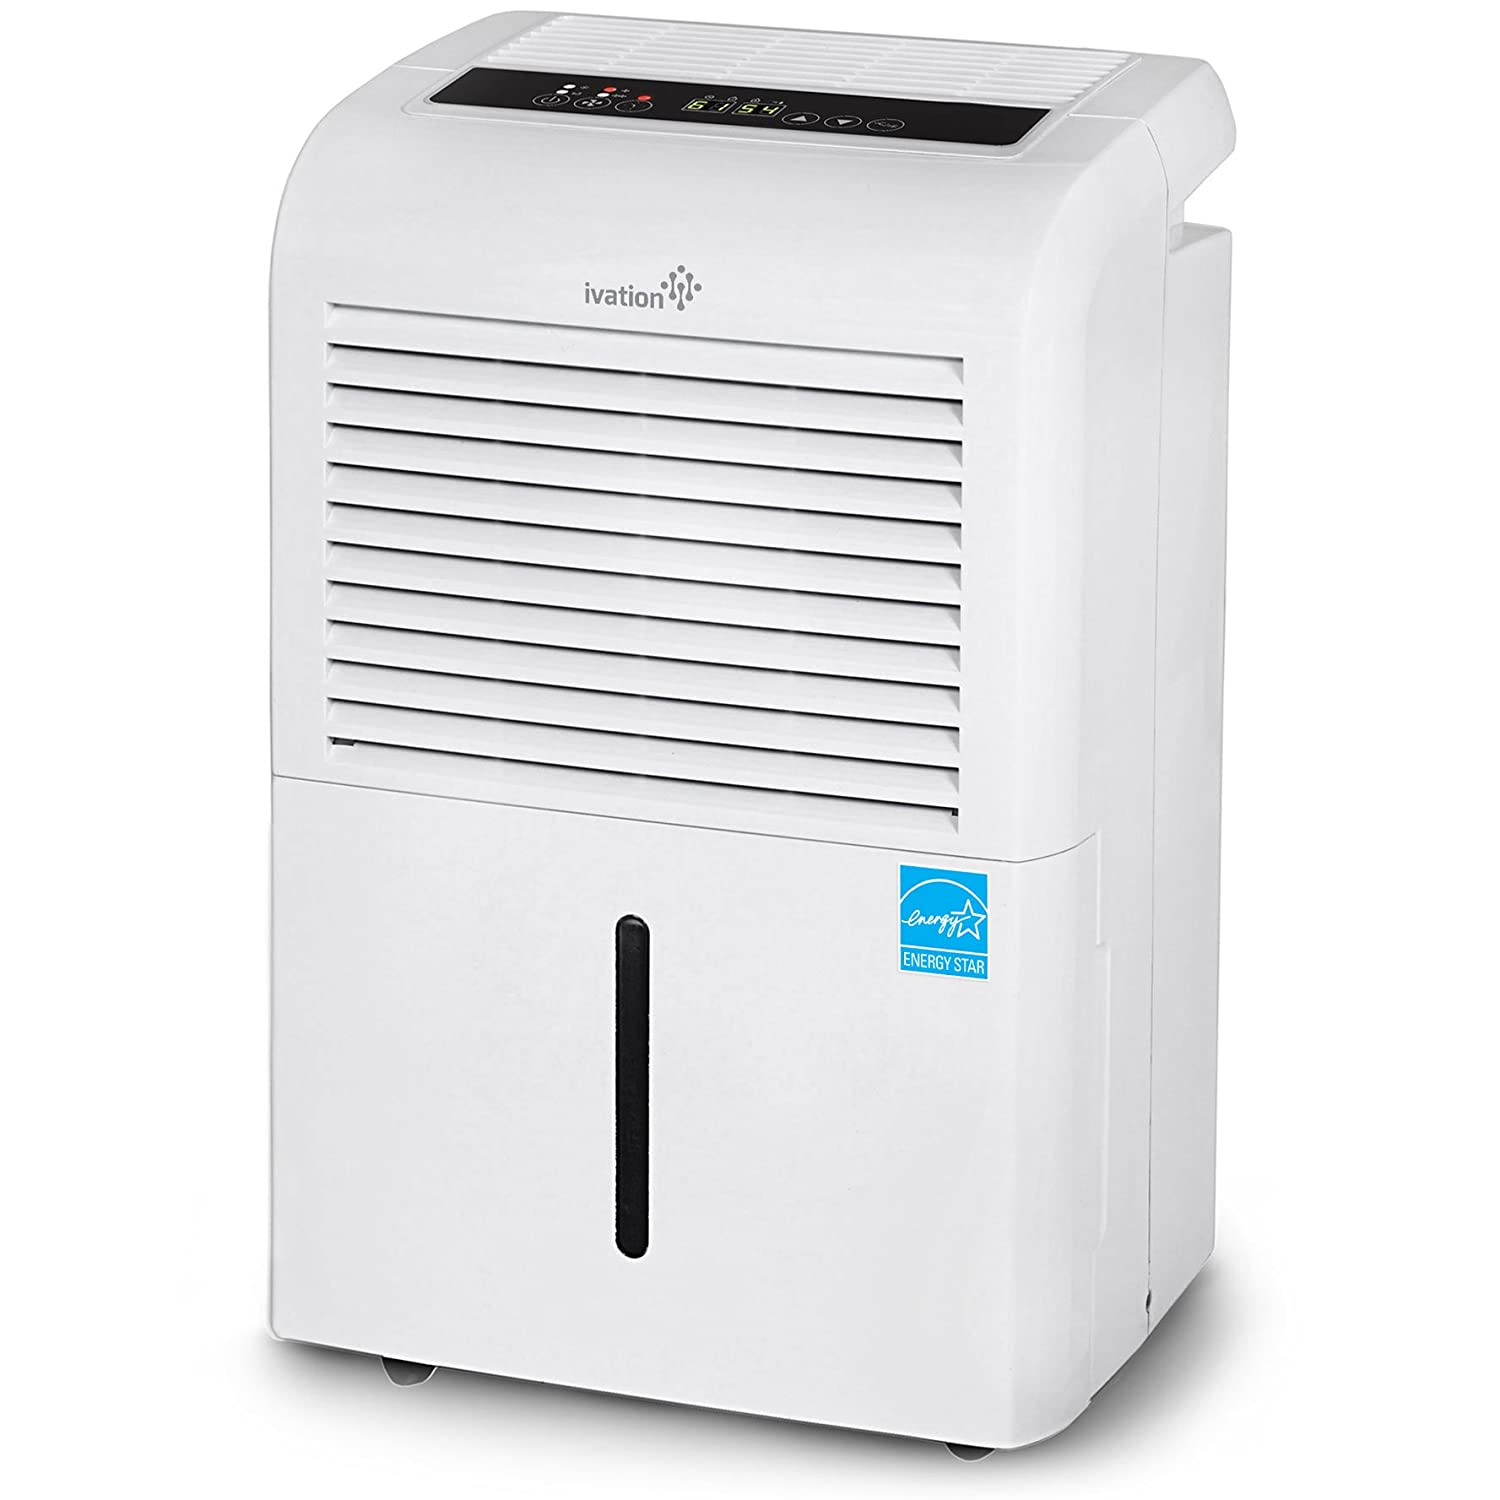 Ivation 70 Pint Energy Star Dehumidifier with Pump Review